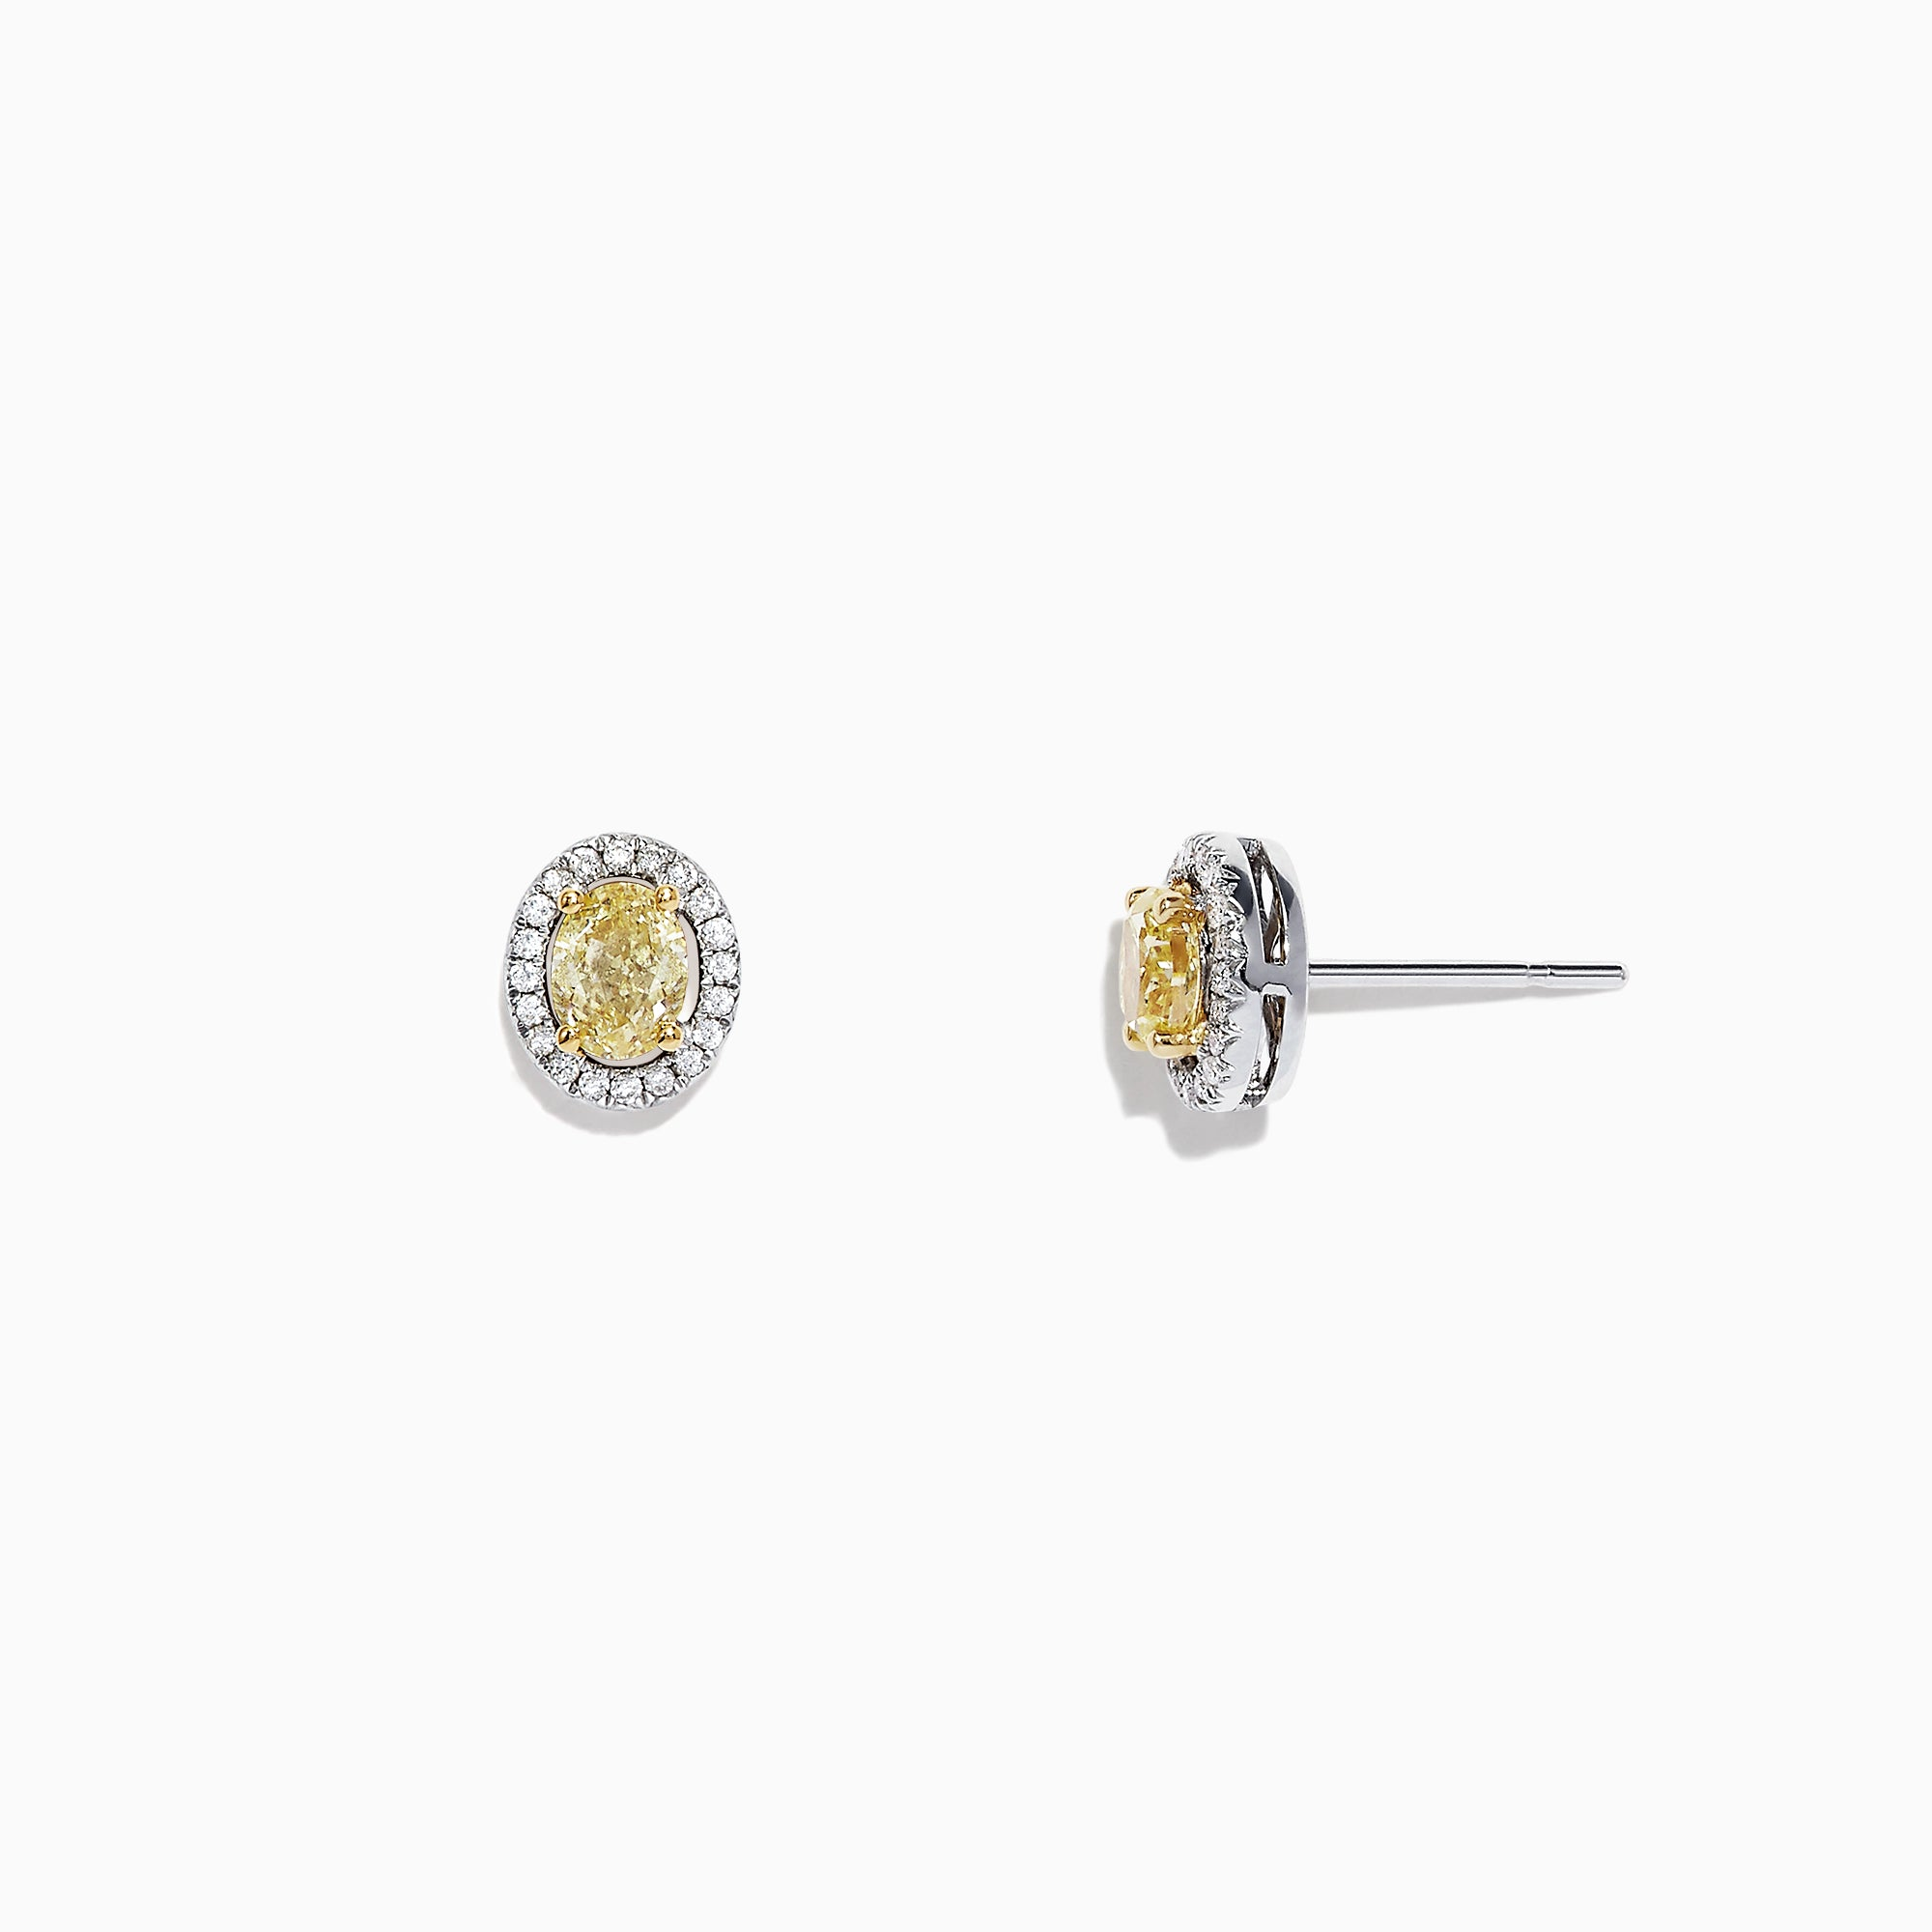 Effy Canare 18K Two-Tone Gold Yellow and White Diamond Earrings, 0.51 TCW